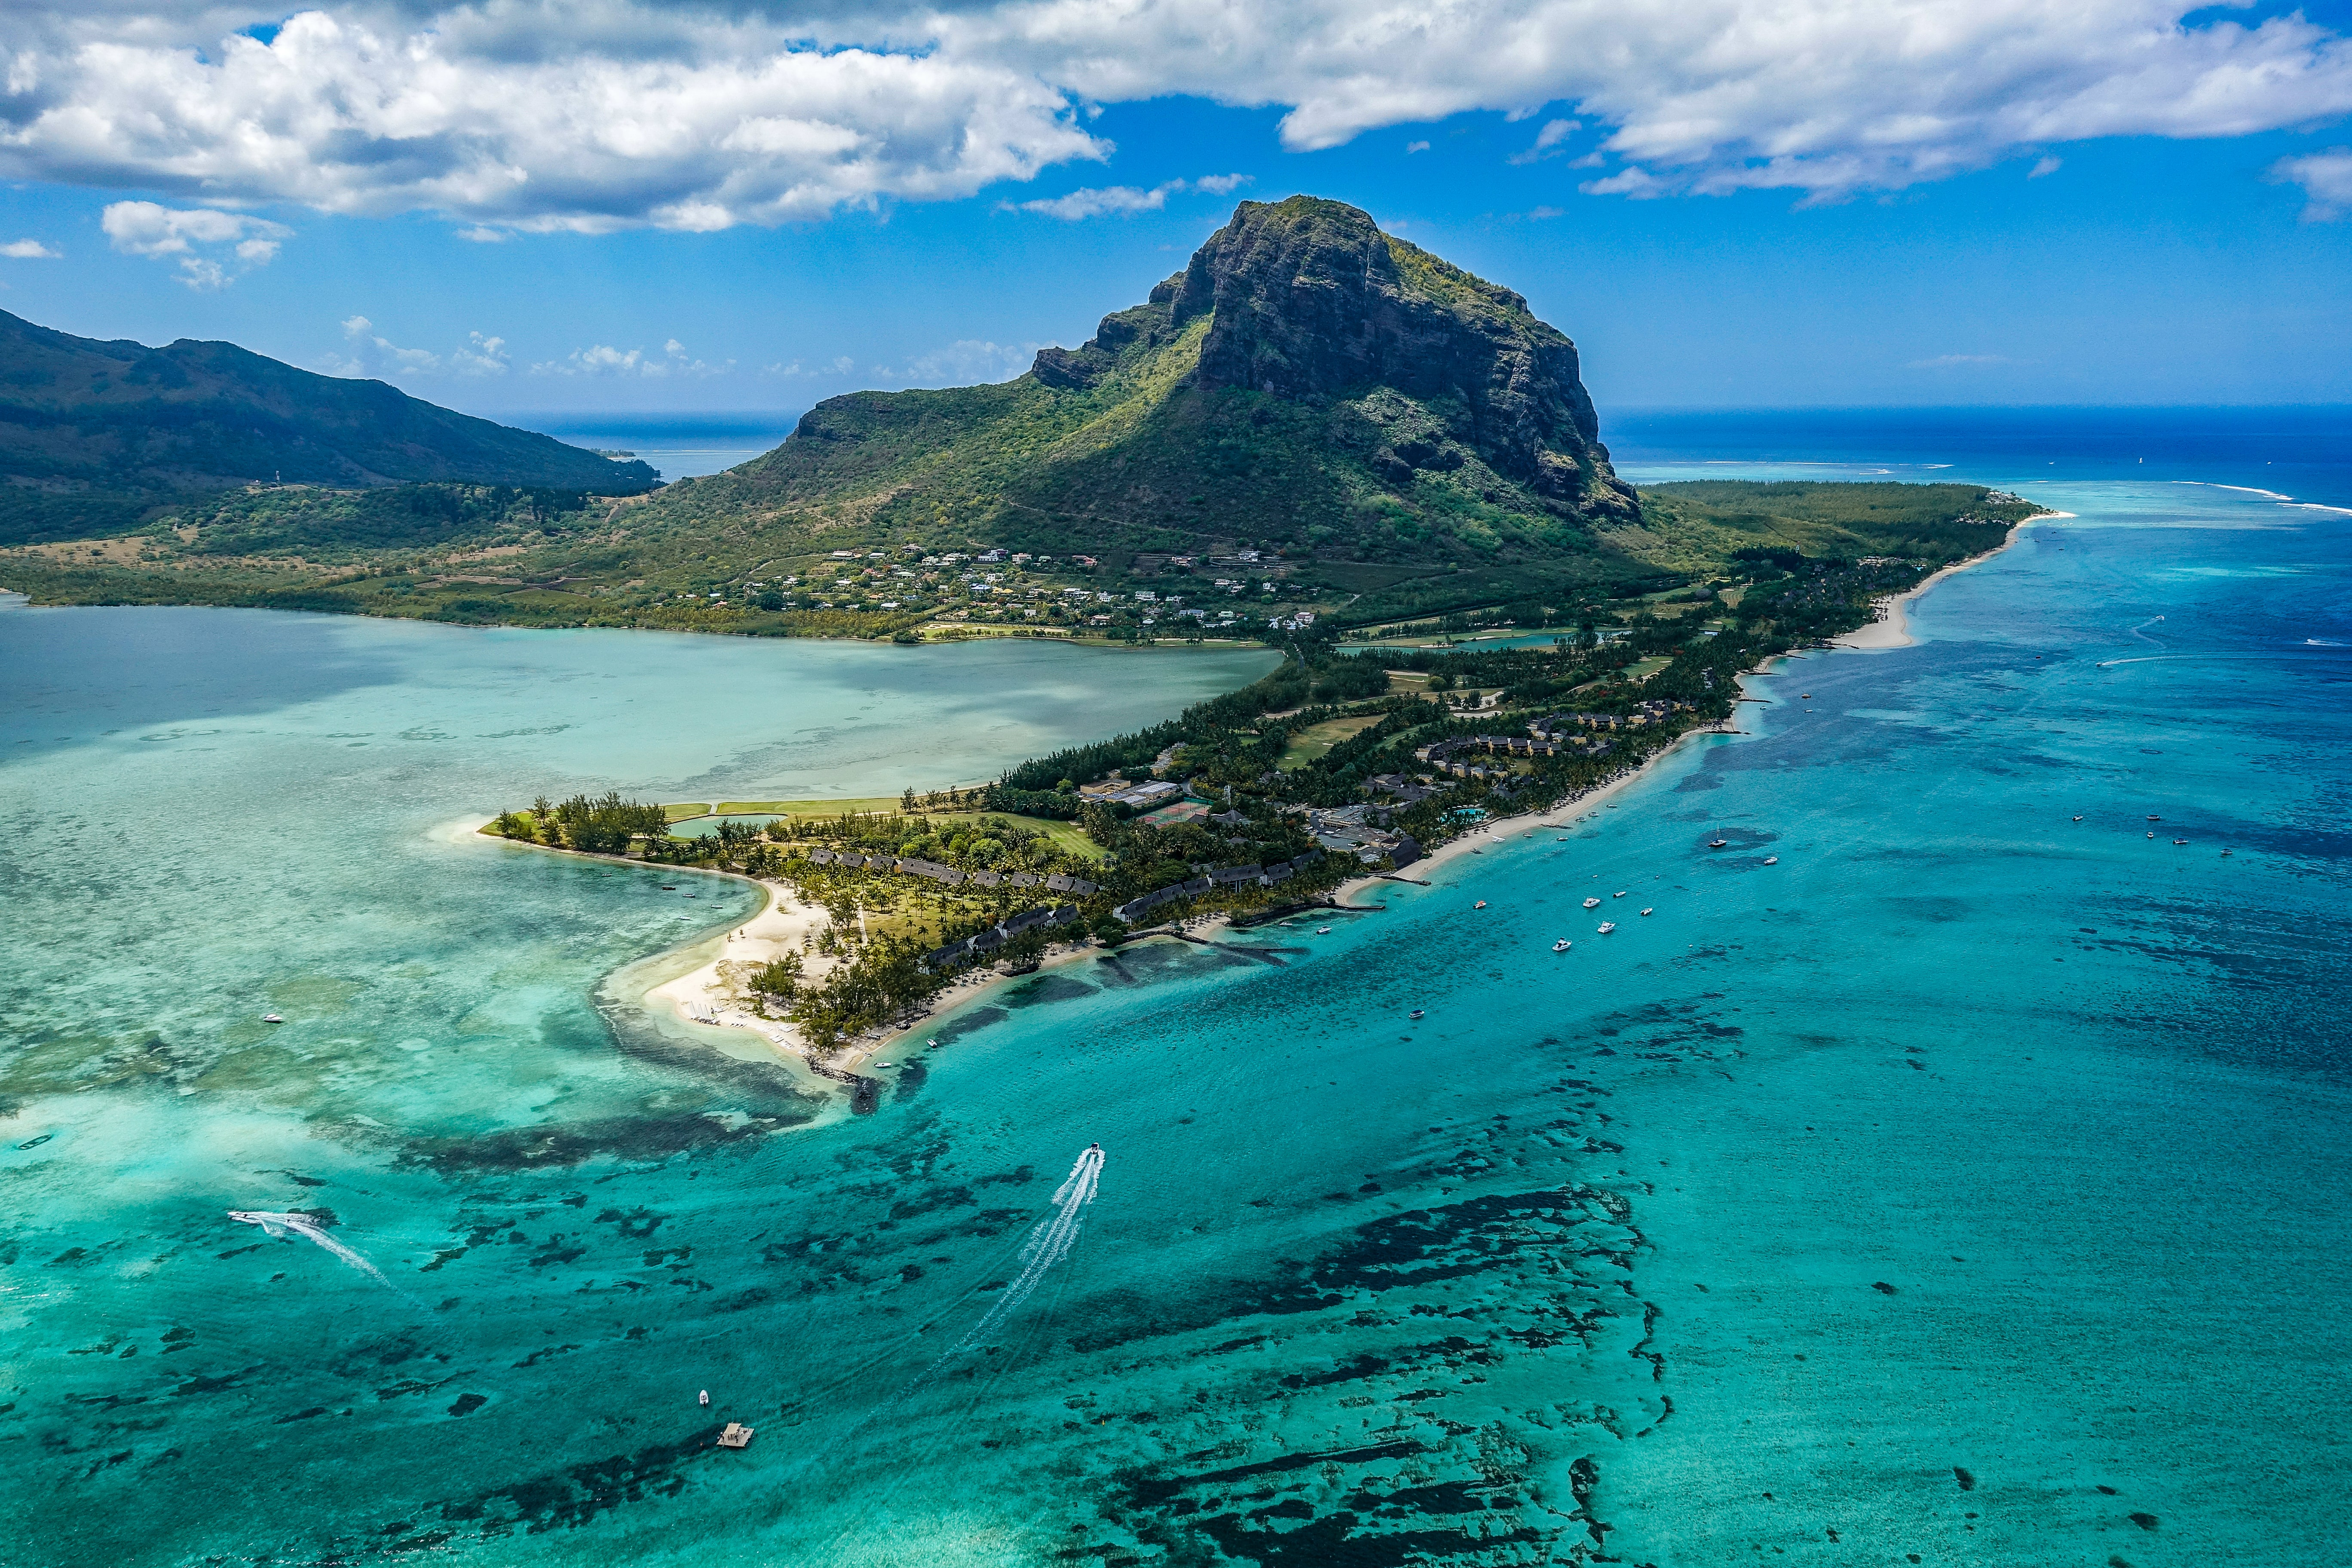 Mauritius is a covid alternative with crystal blue waters and green mountains.